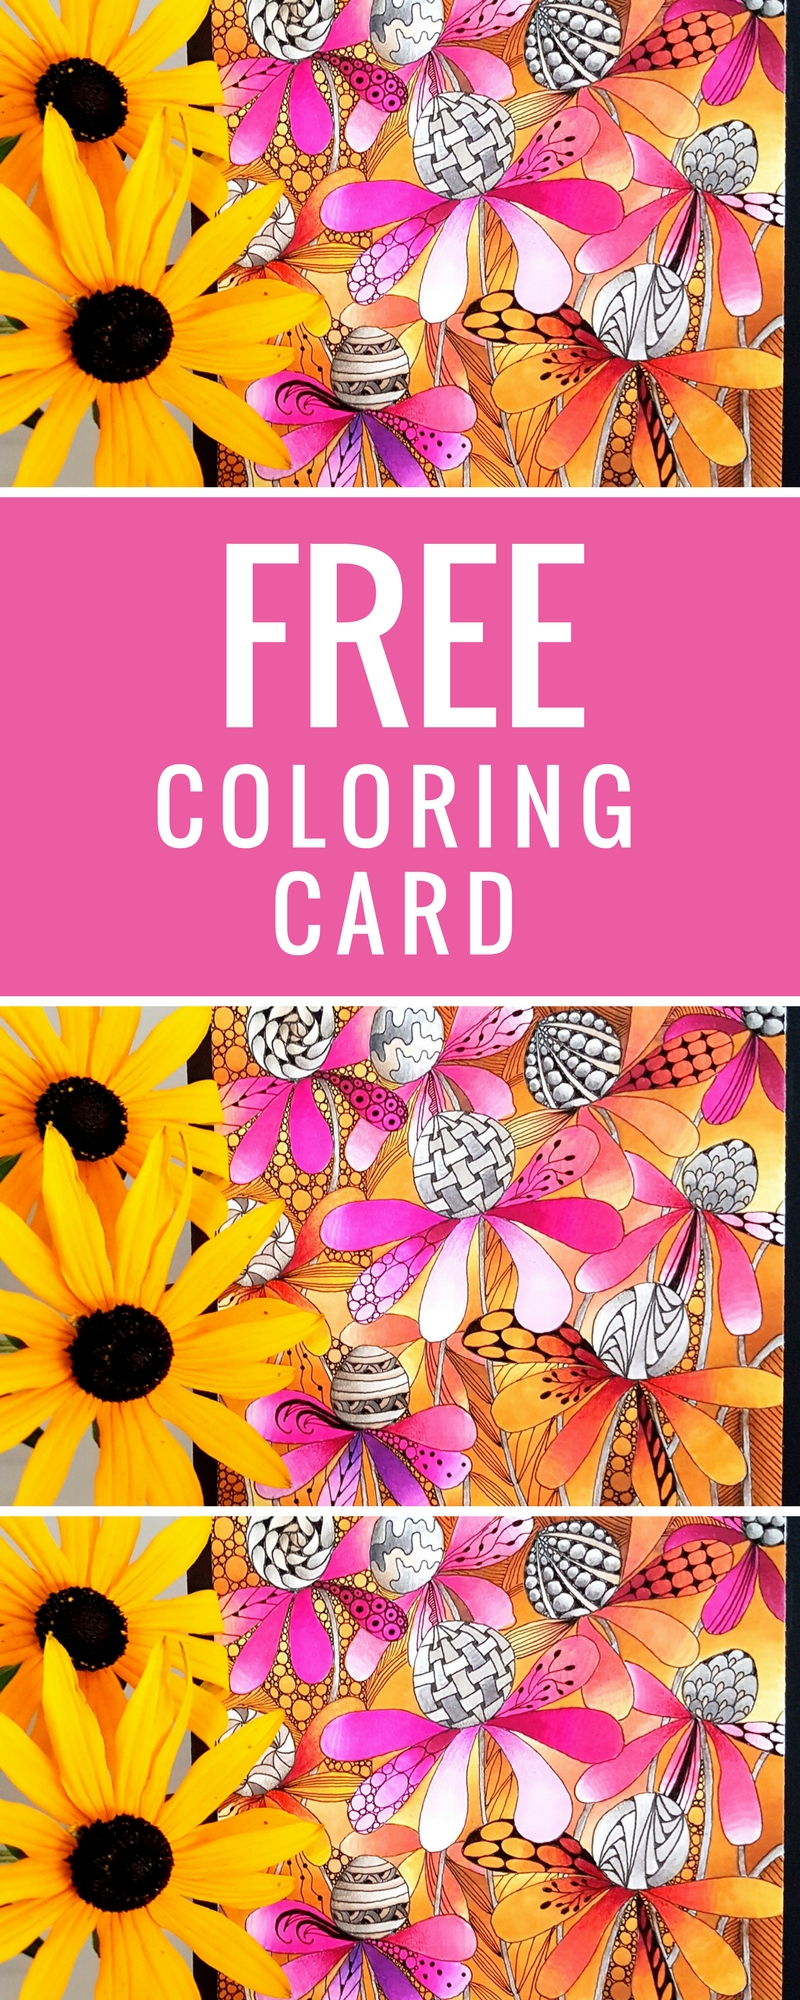 FREE Coloring Card   Adult Coloring   Designed by Betty Hung   Featuring Chameleon Color Tops   Creative Scrapbooker Magazine